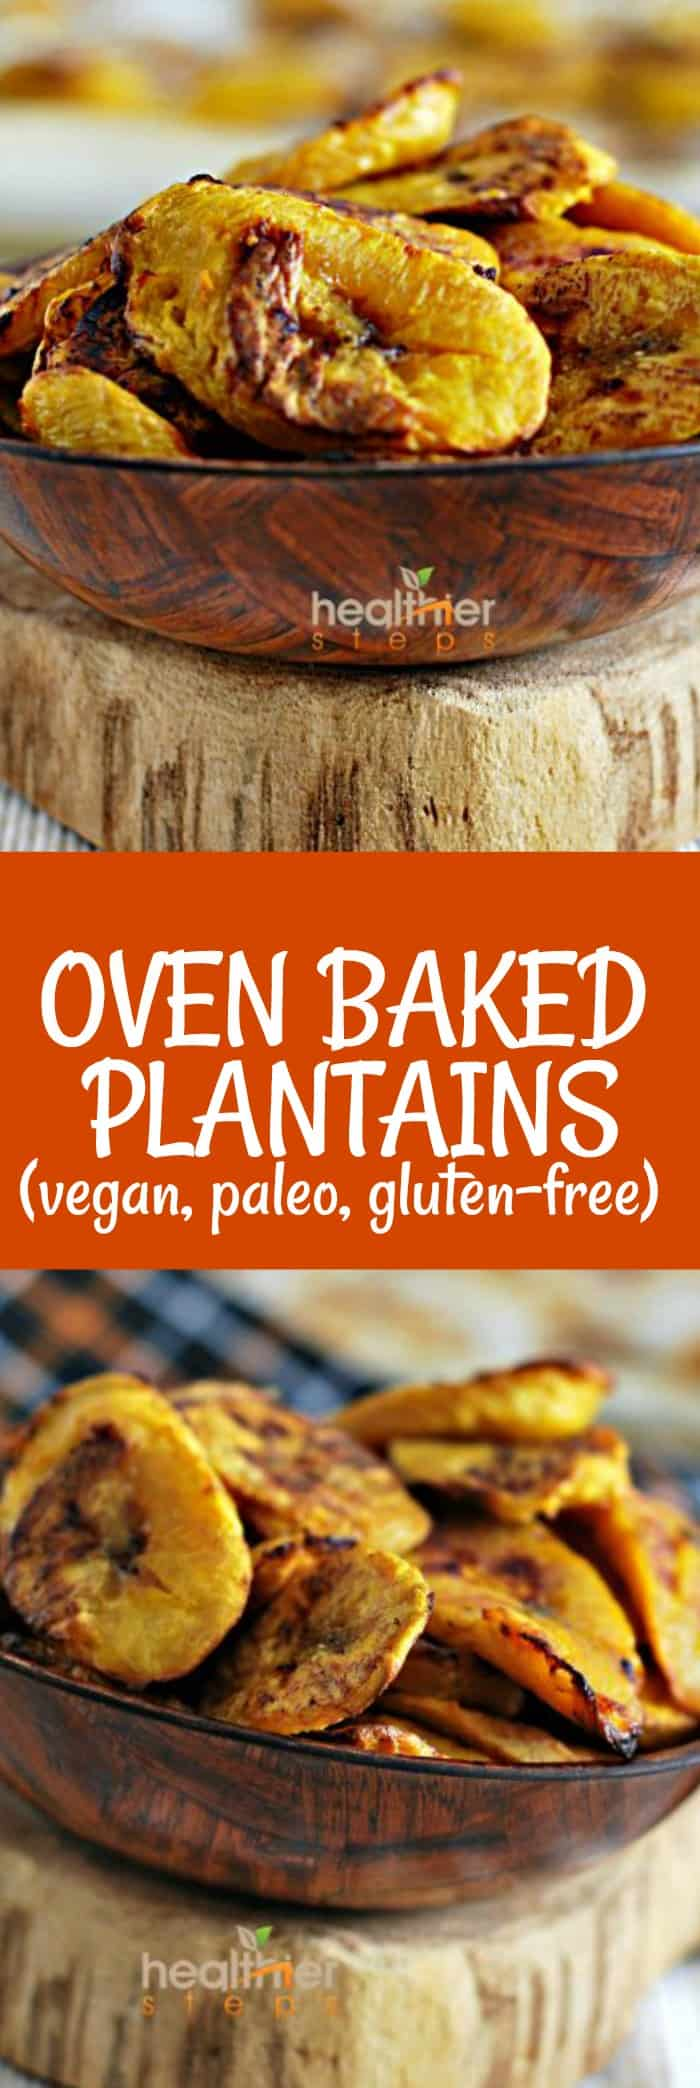 Oven Baked Plantains